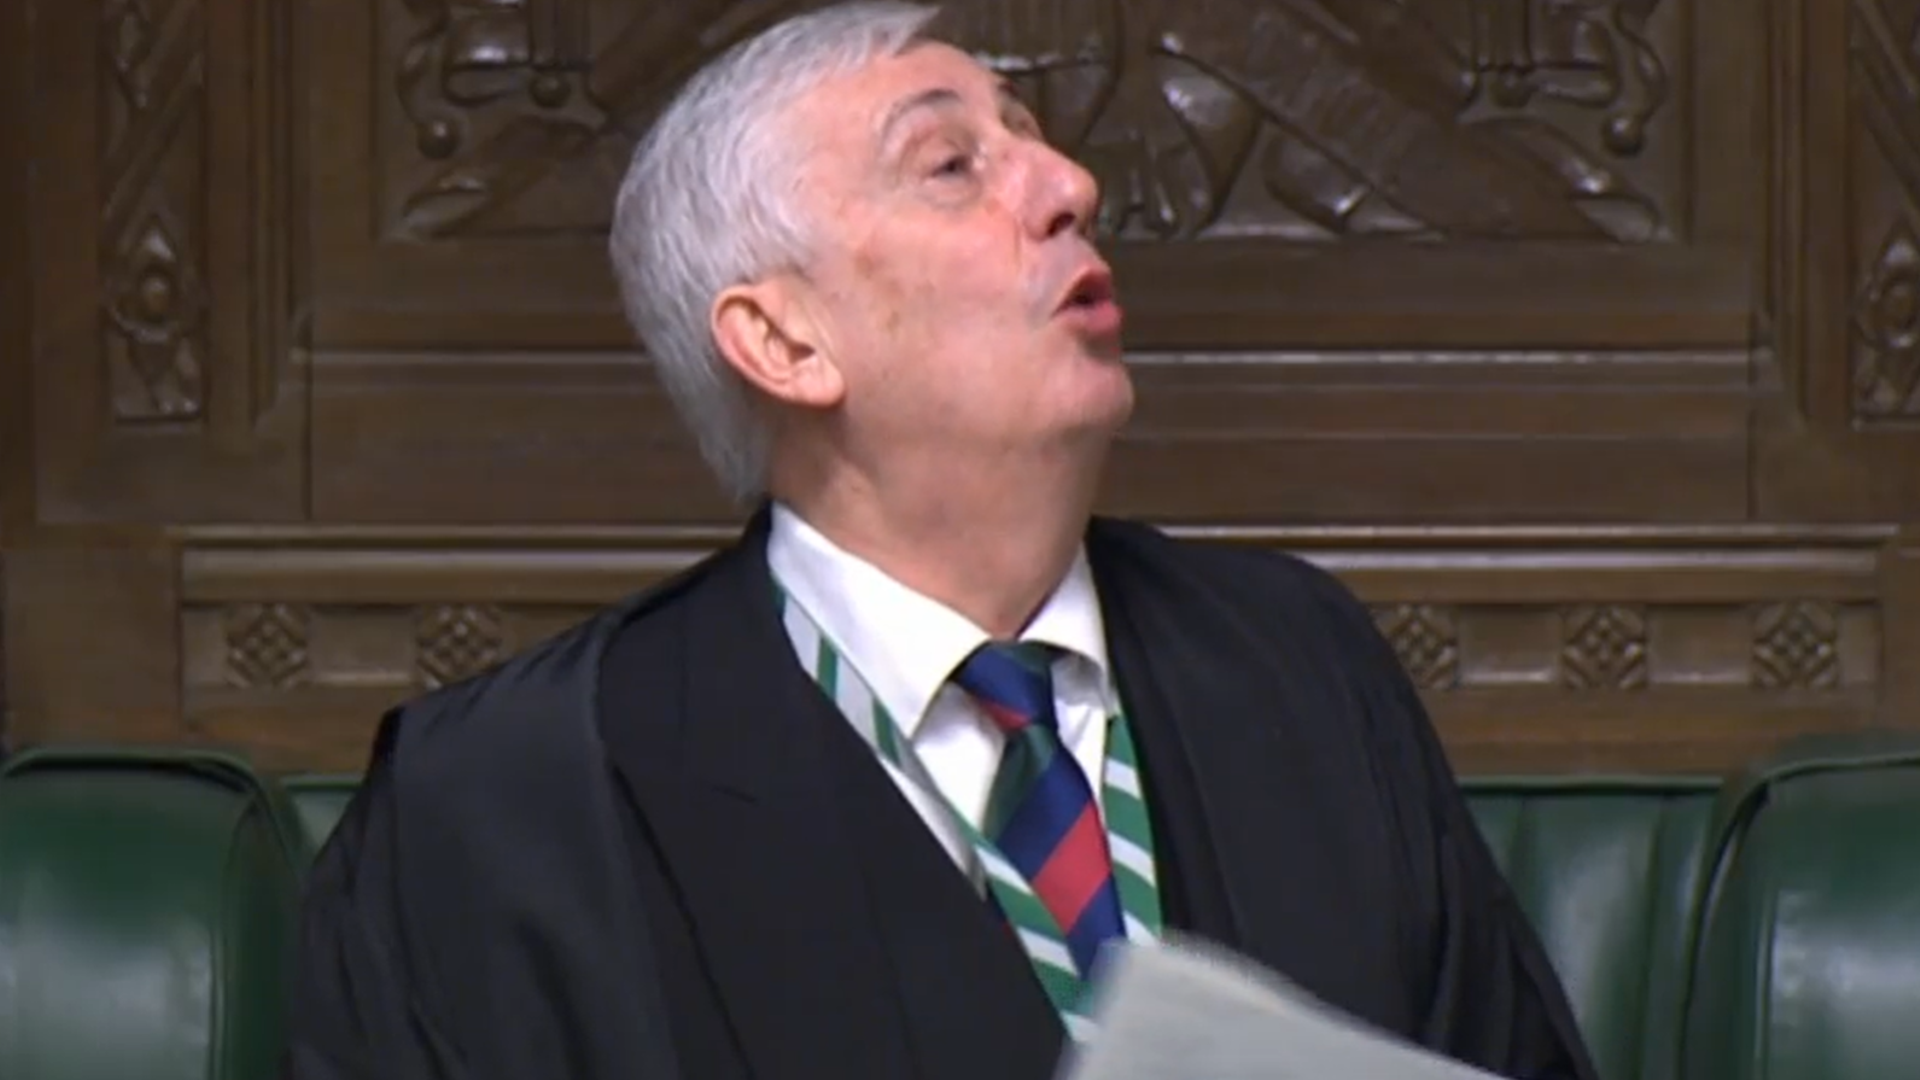 Lindsay Hoyle in the House of Commons - Credit: Parliament Live